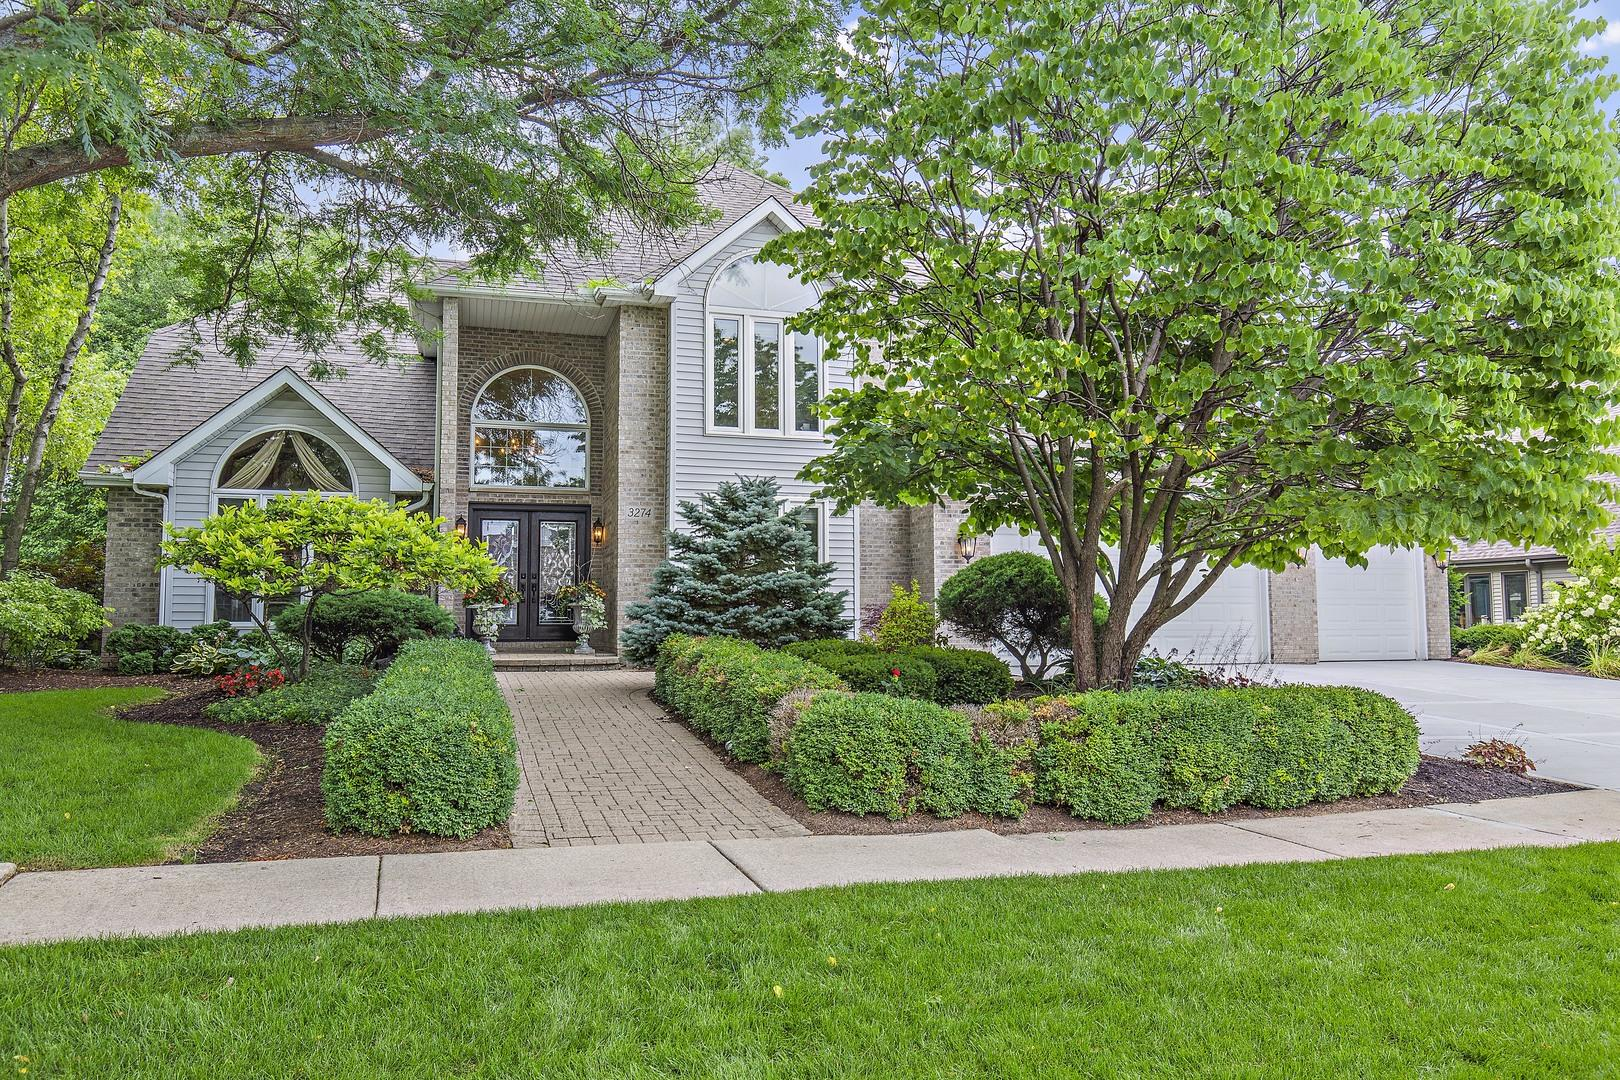 3274 Windsong, Rockford, IL 61114 - #: 10811227